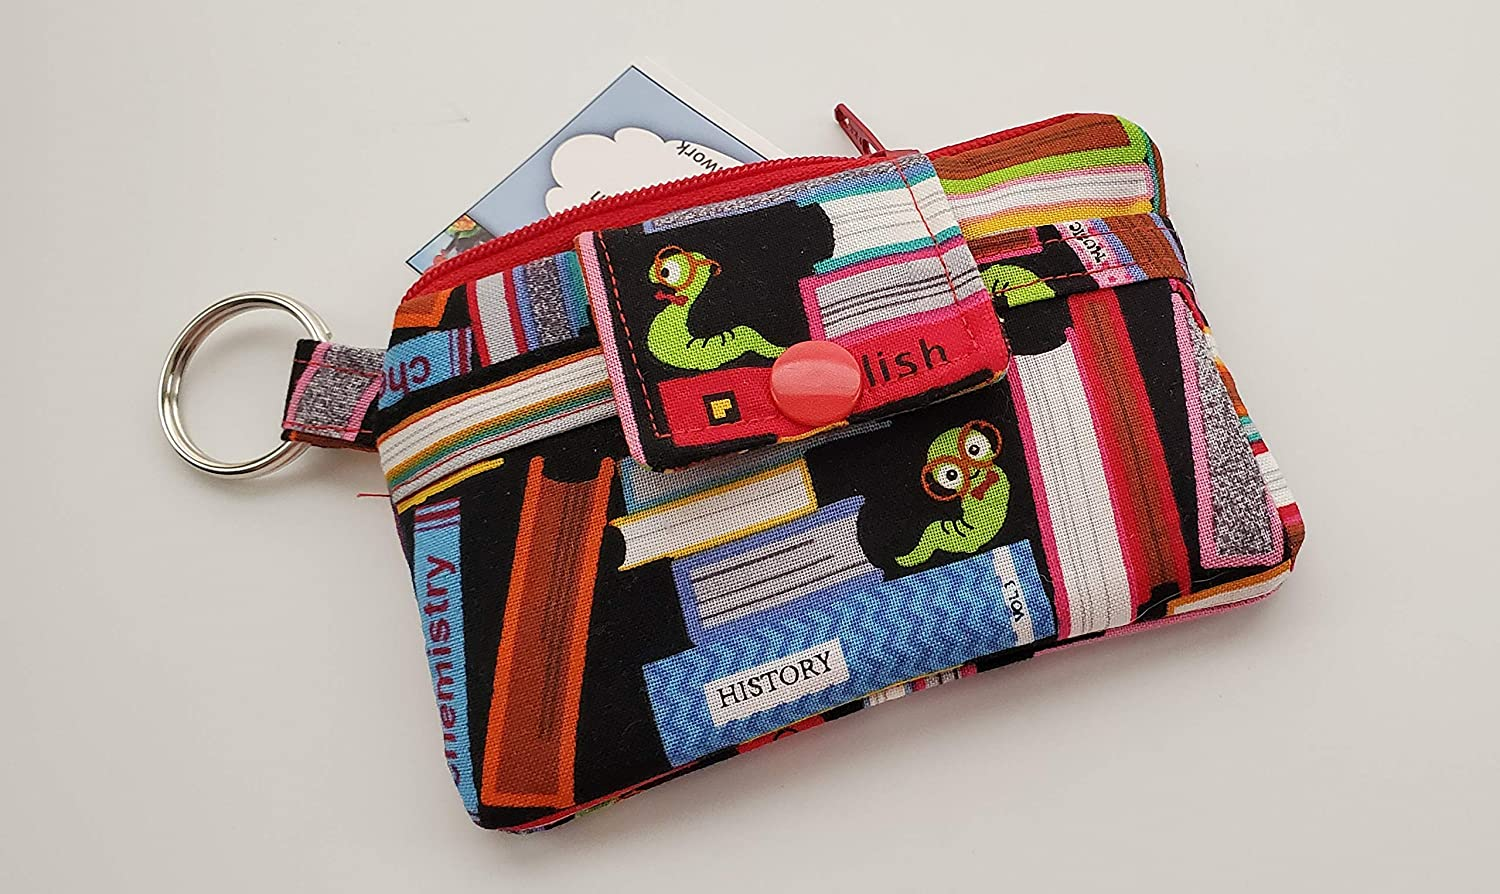 ZIPPERED Wallet--money cards toiletries Eyeglasses--Zippered Pouches--Coin Purse--Patchwork--hippie chic--paisleys--retro--boho Jewelry